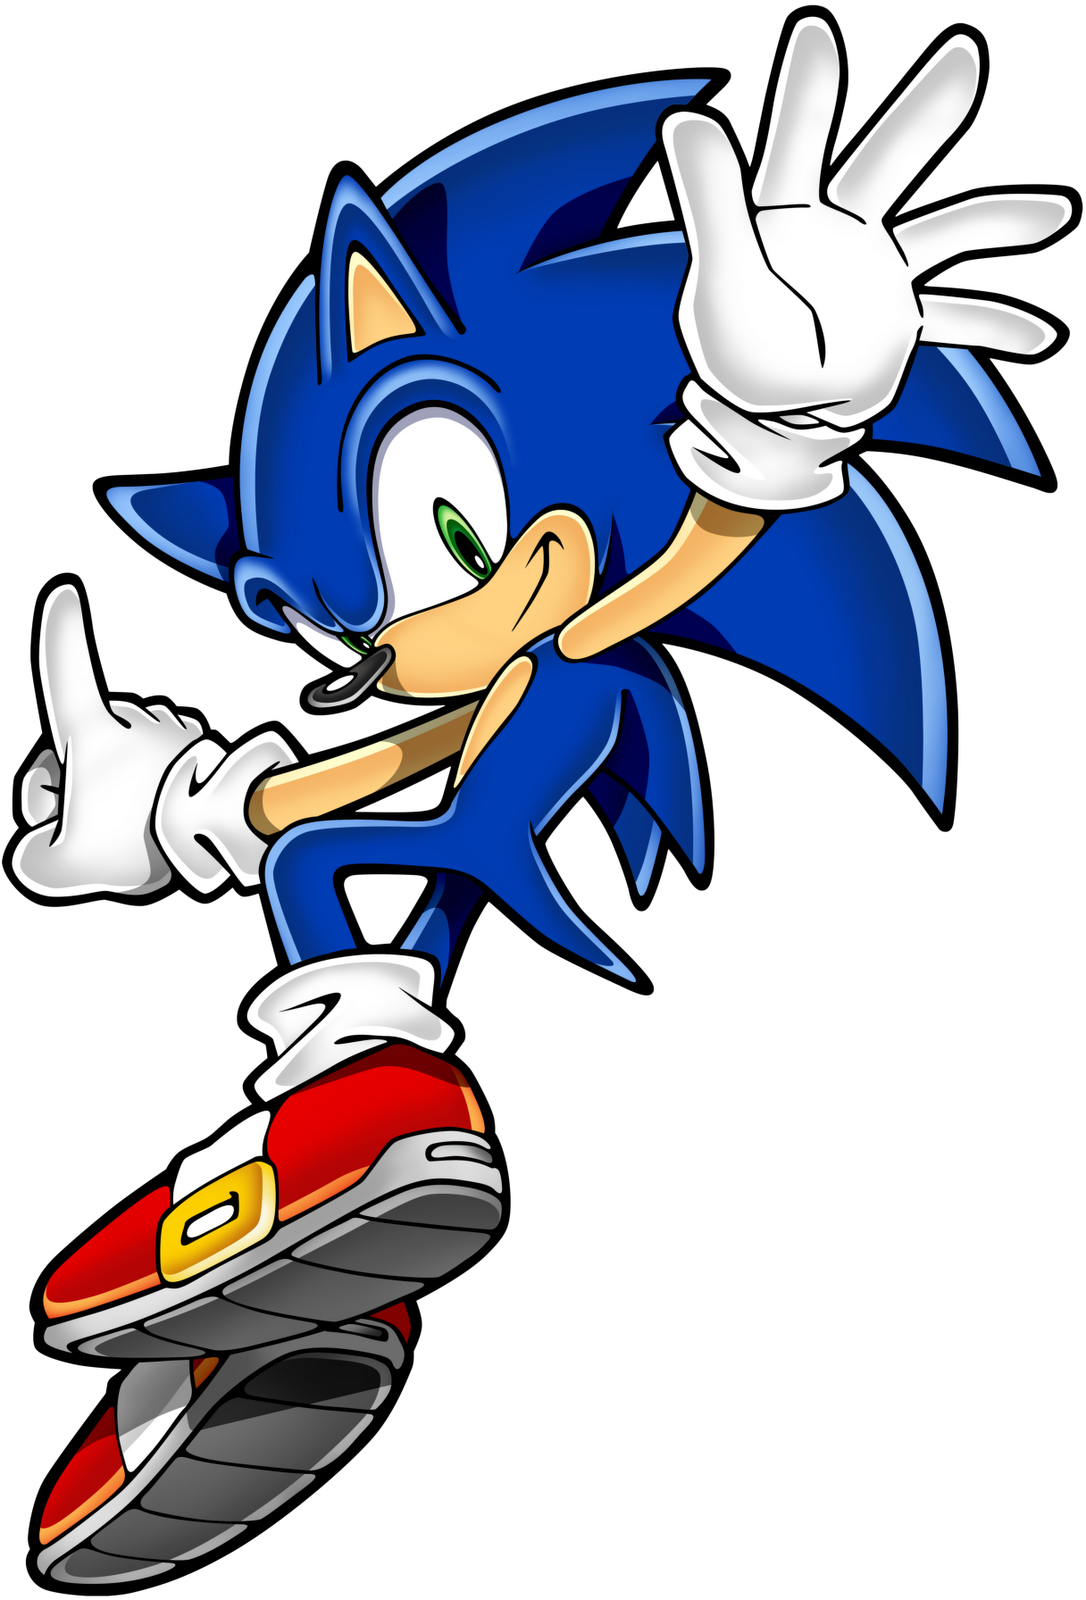 It's just a photo of Simplicity Sonic the Hedgehog Galleries